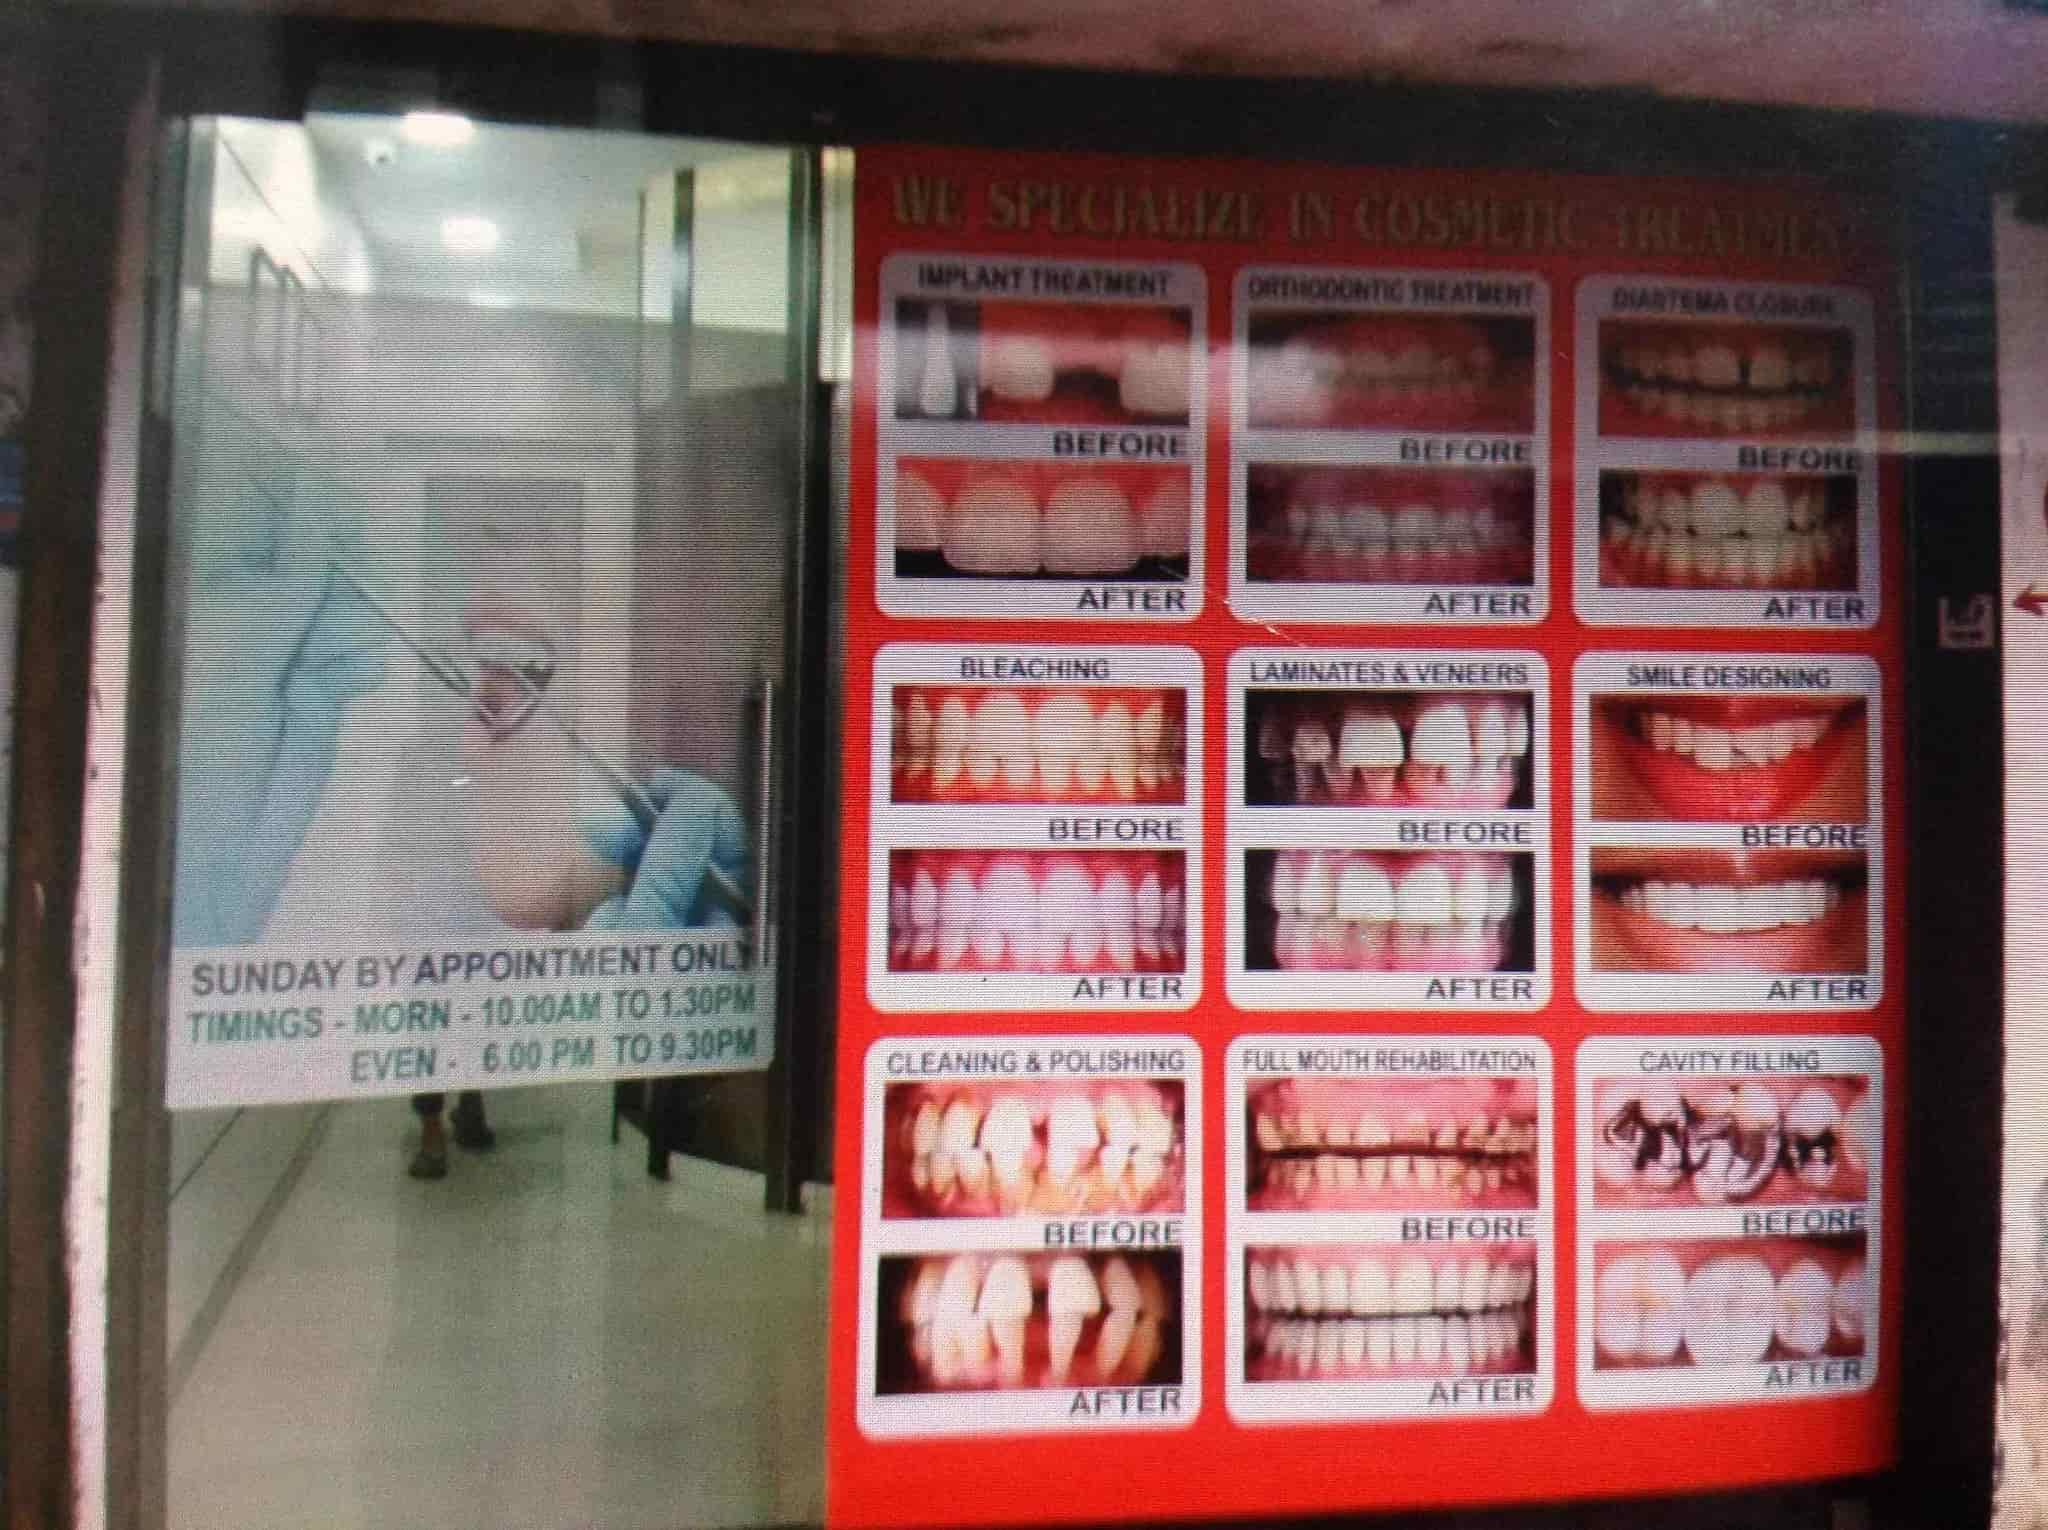 Jewel Smile Photos Malad East Mumbai Pictures Images Gallery Wiring X Y W Dentists